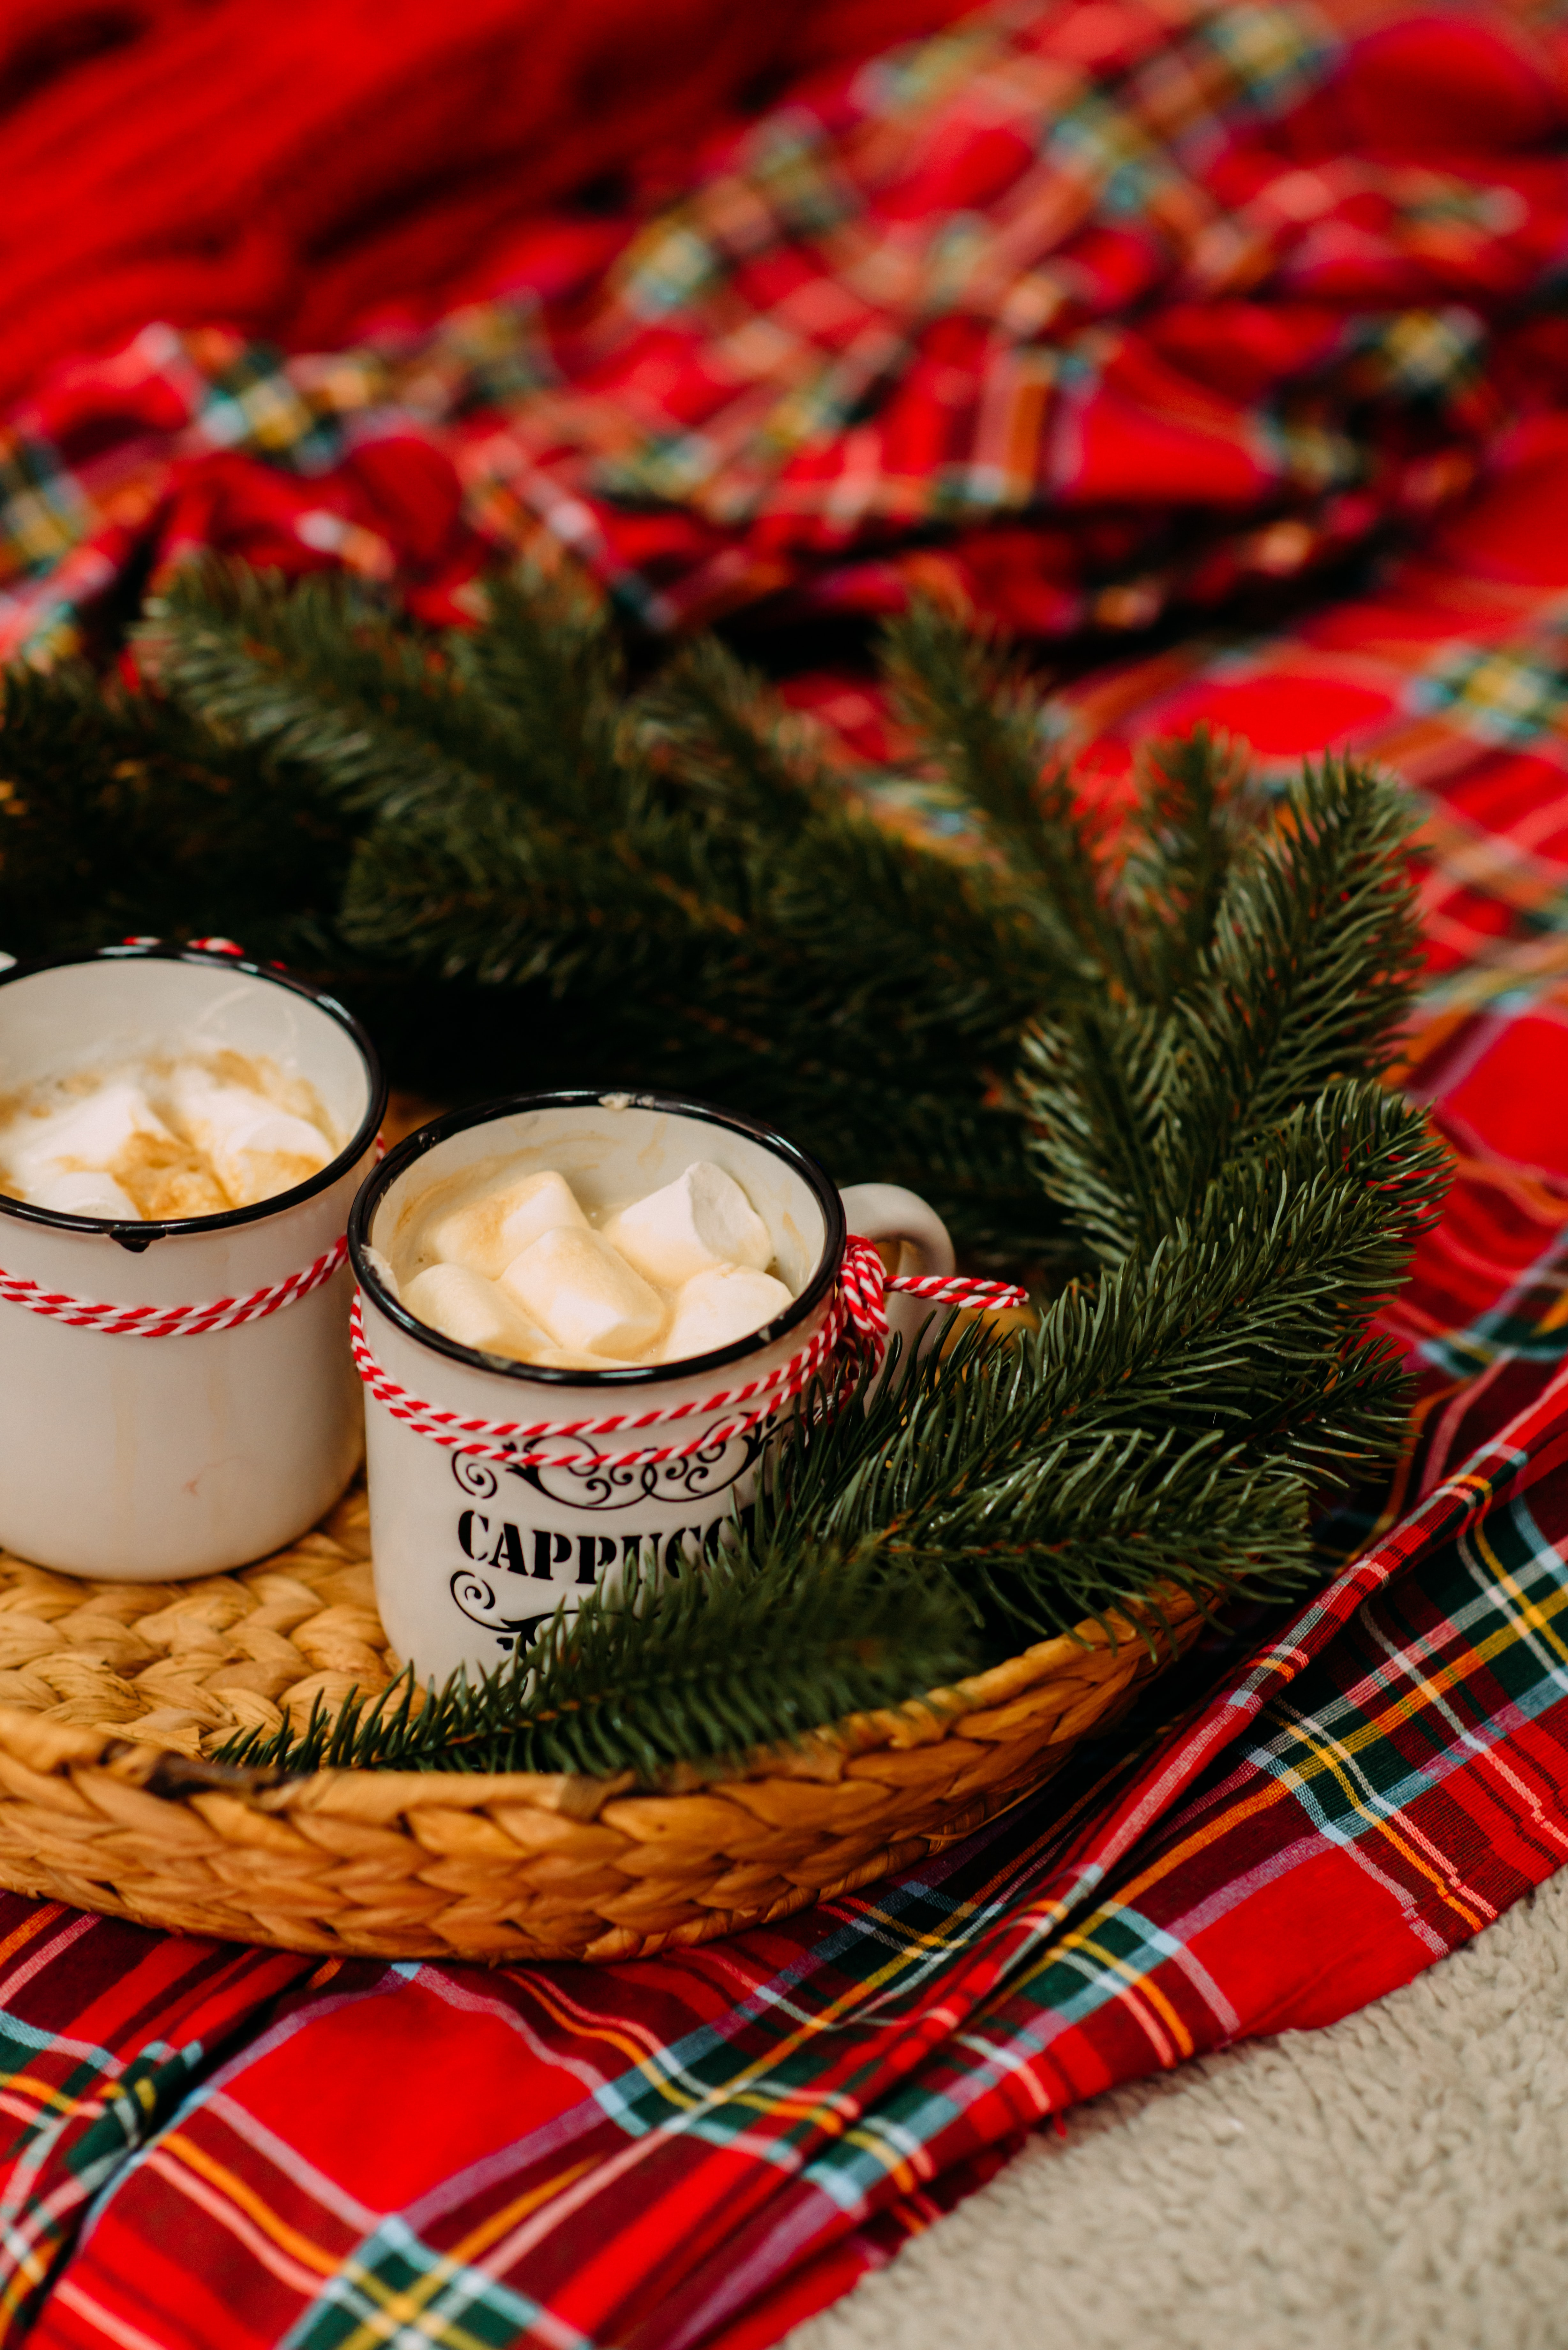 131933 download wallpaper Holidays, Mugs, Marshmallow, Zephyr, Spruce, Fir, Branches, Holiday screensavers and pictures for free